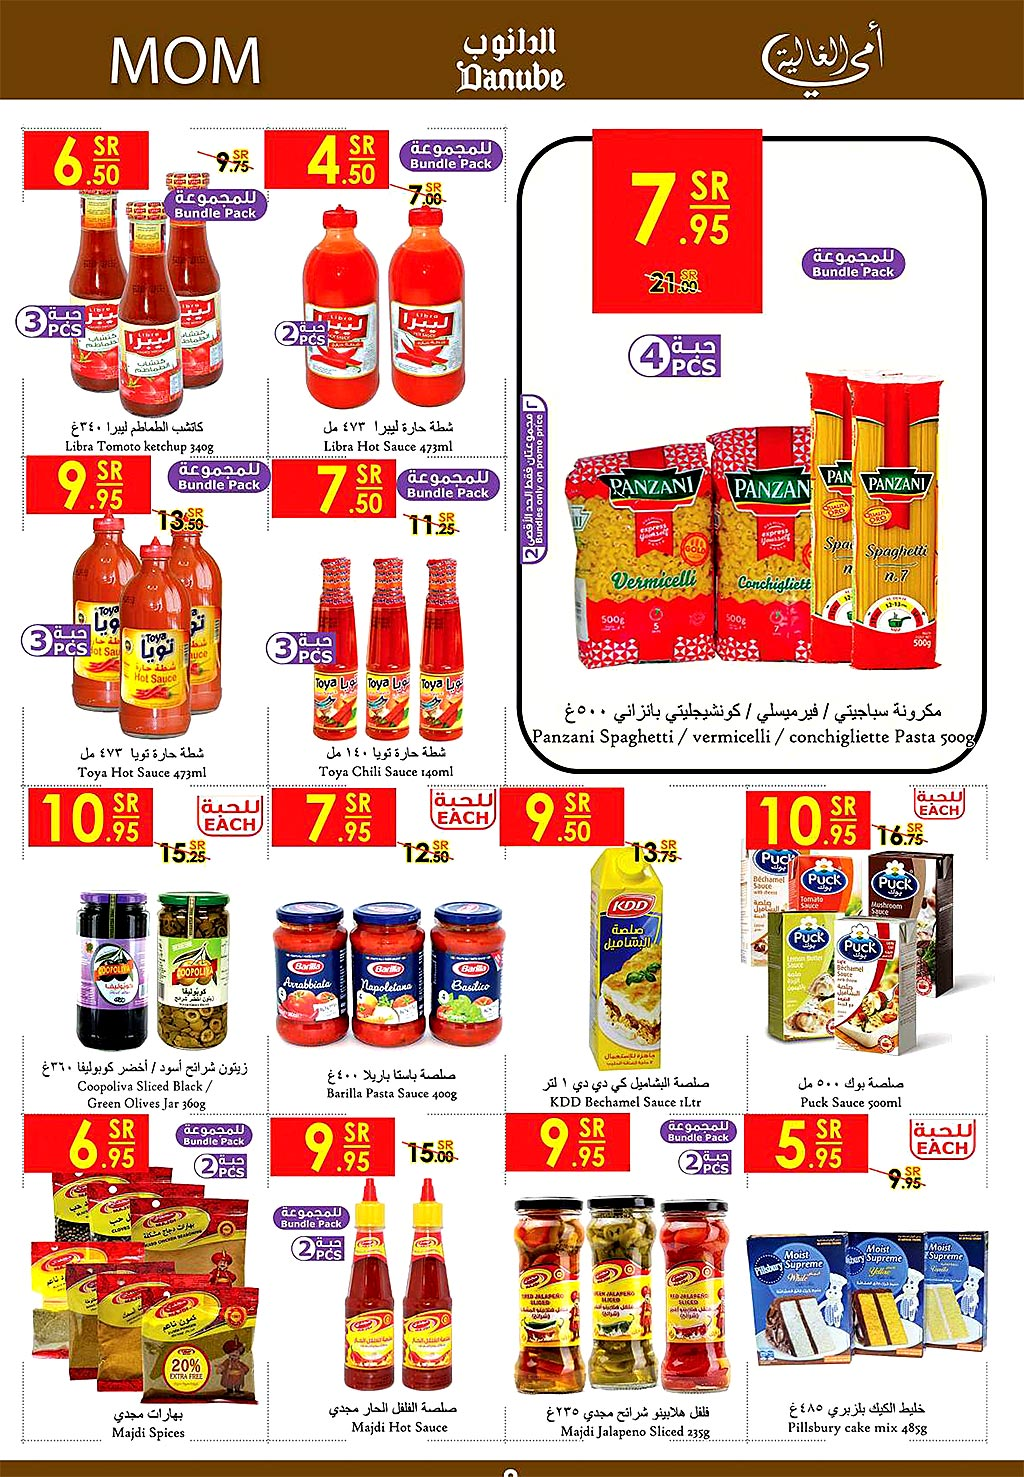 danube offers from 13mar to 20mar 2019 page number 7 عروض الدانوب من 13 مارس حتى 20 مارس 2019 صفحة رقم 7